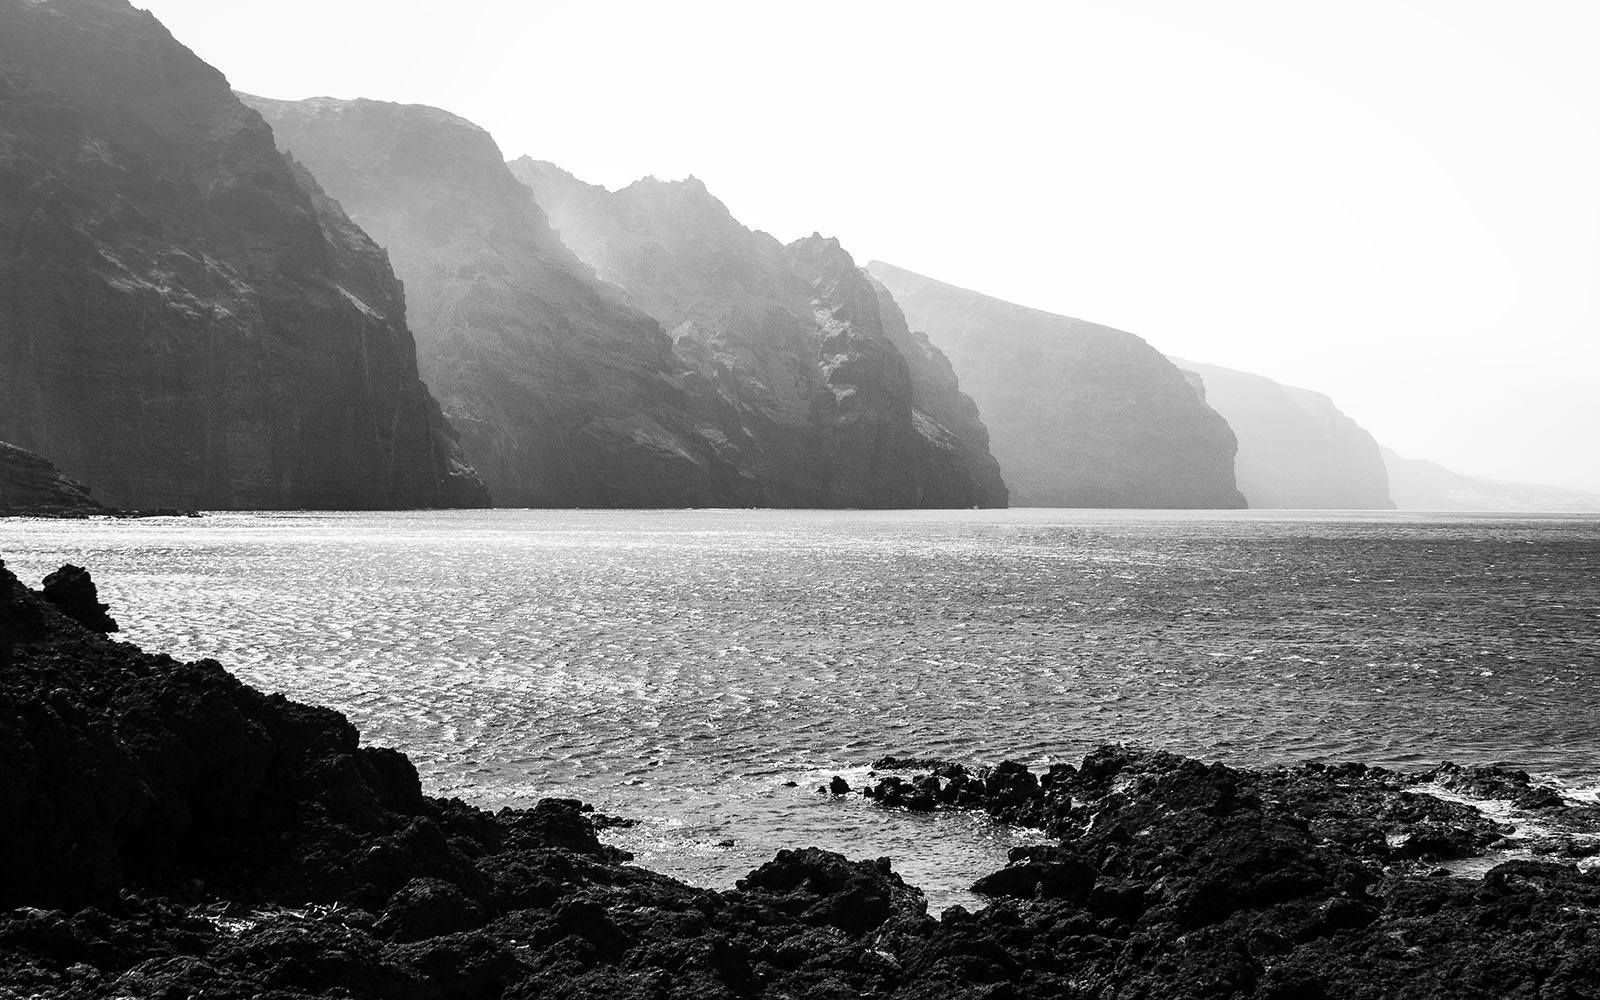 Tenerife - Los Gigantes - Black & White Fine Art Photography Series